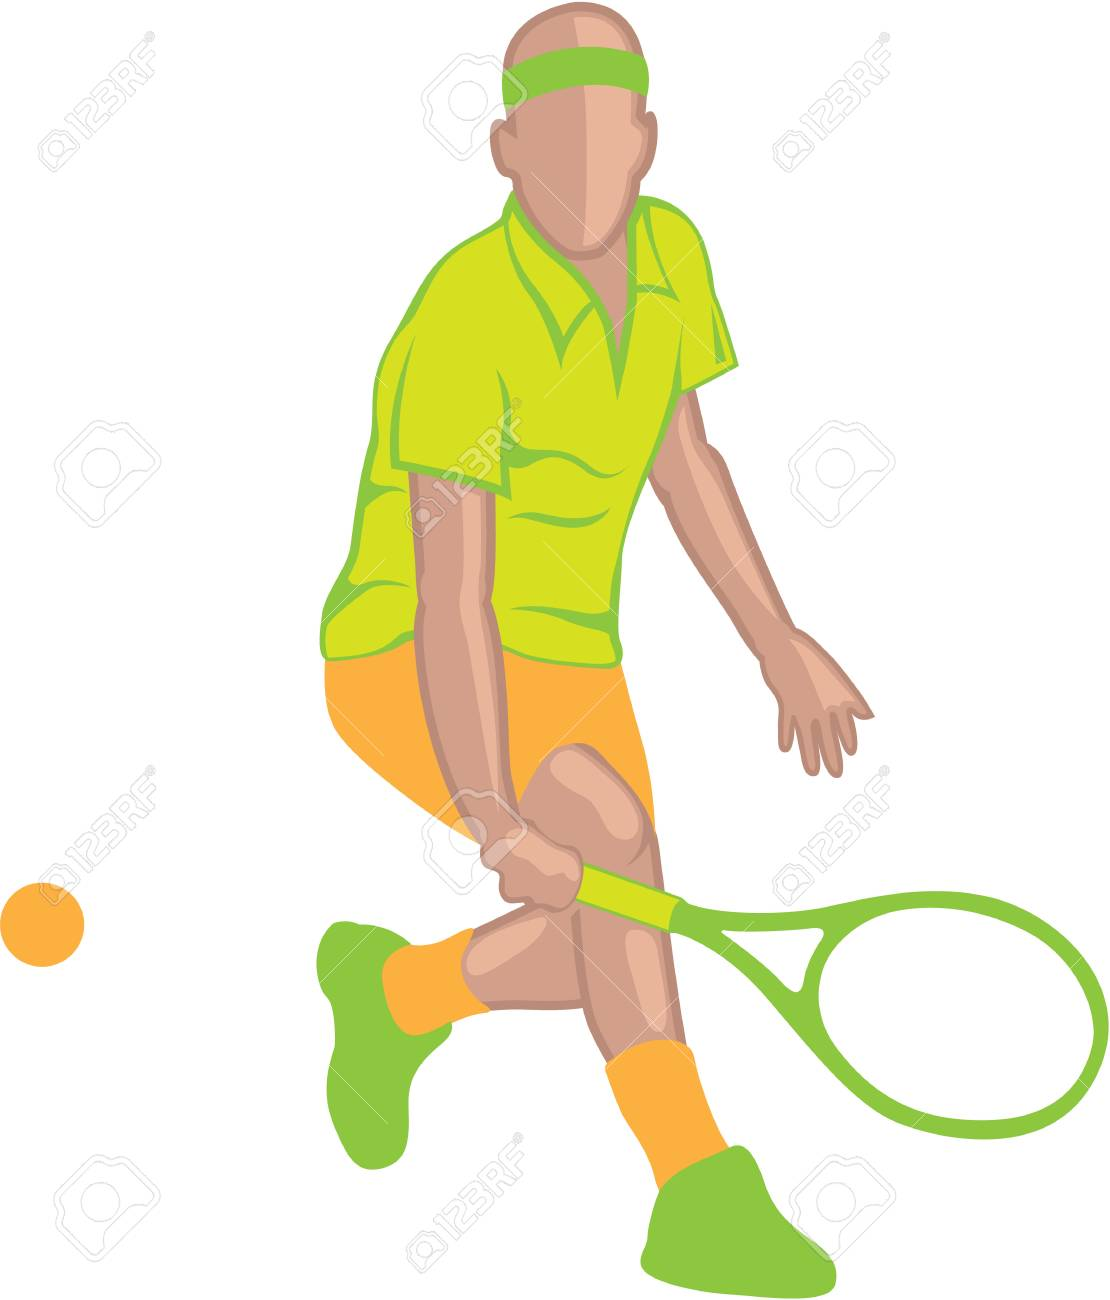 Tennis Player vector illustratioin clip.